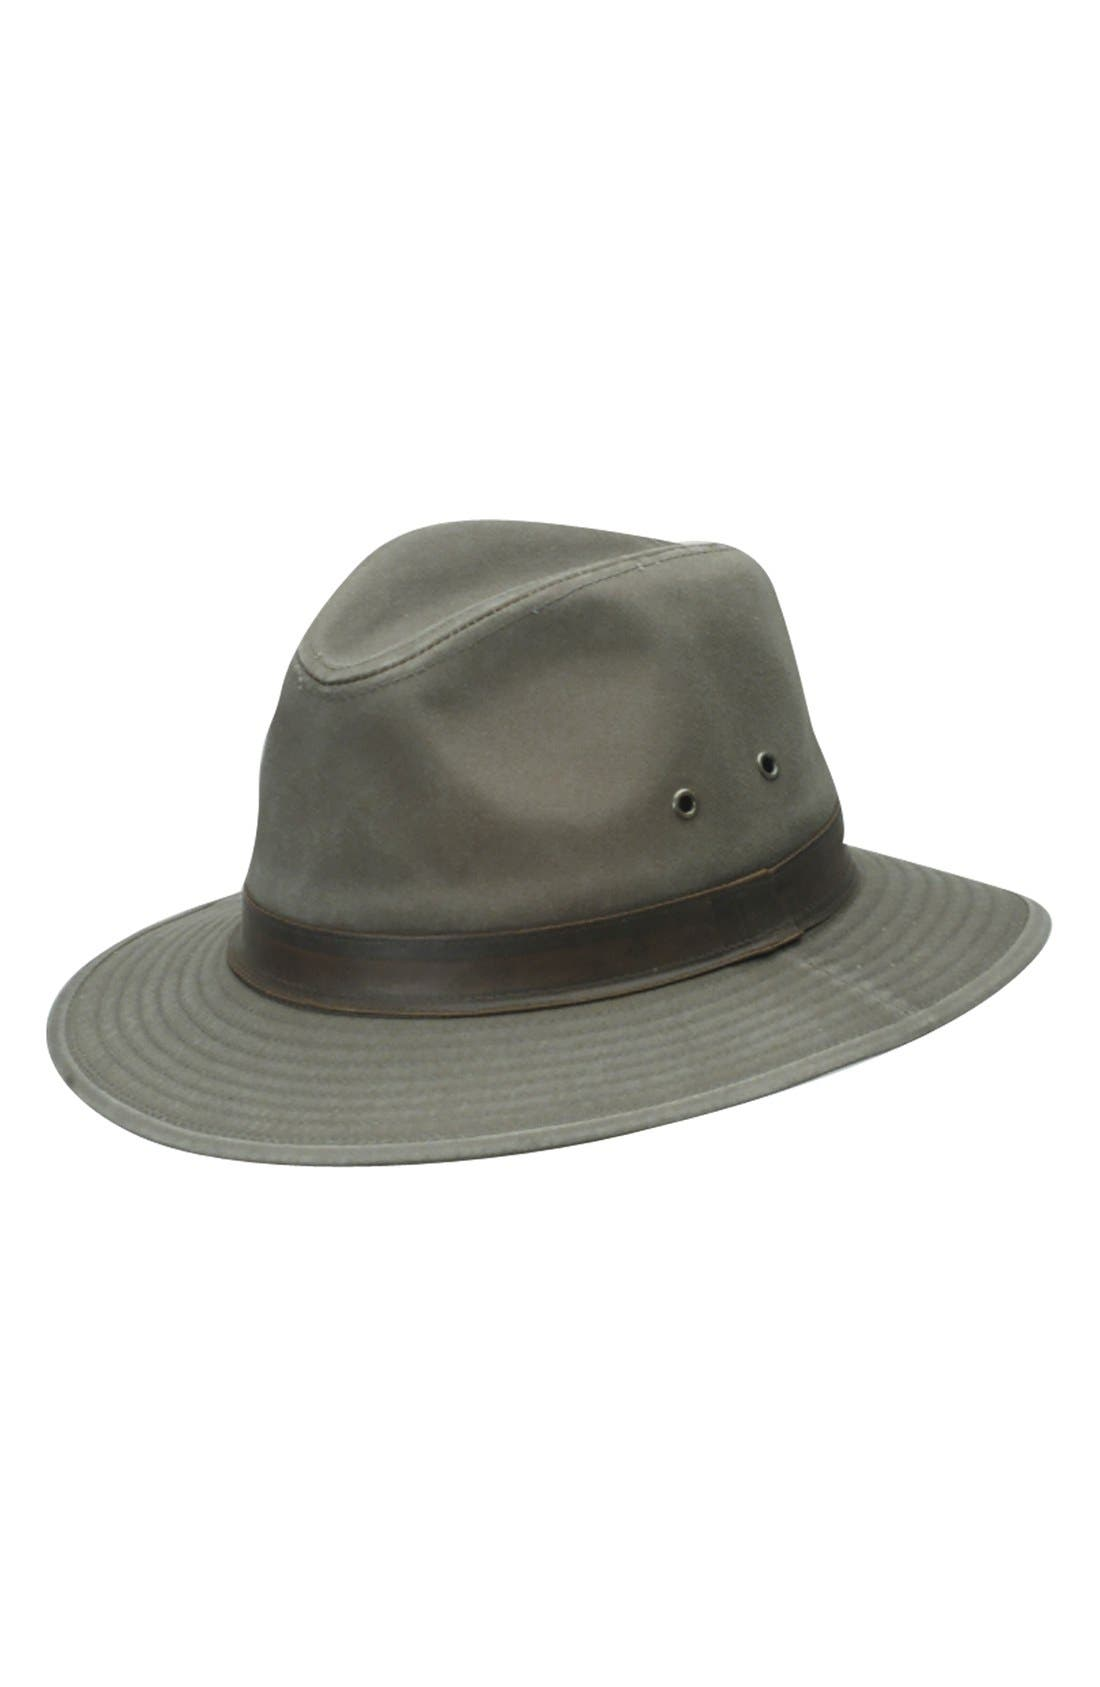 Alternate Image 1 Selected - Dorfman Pacific Safari Fedora